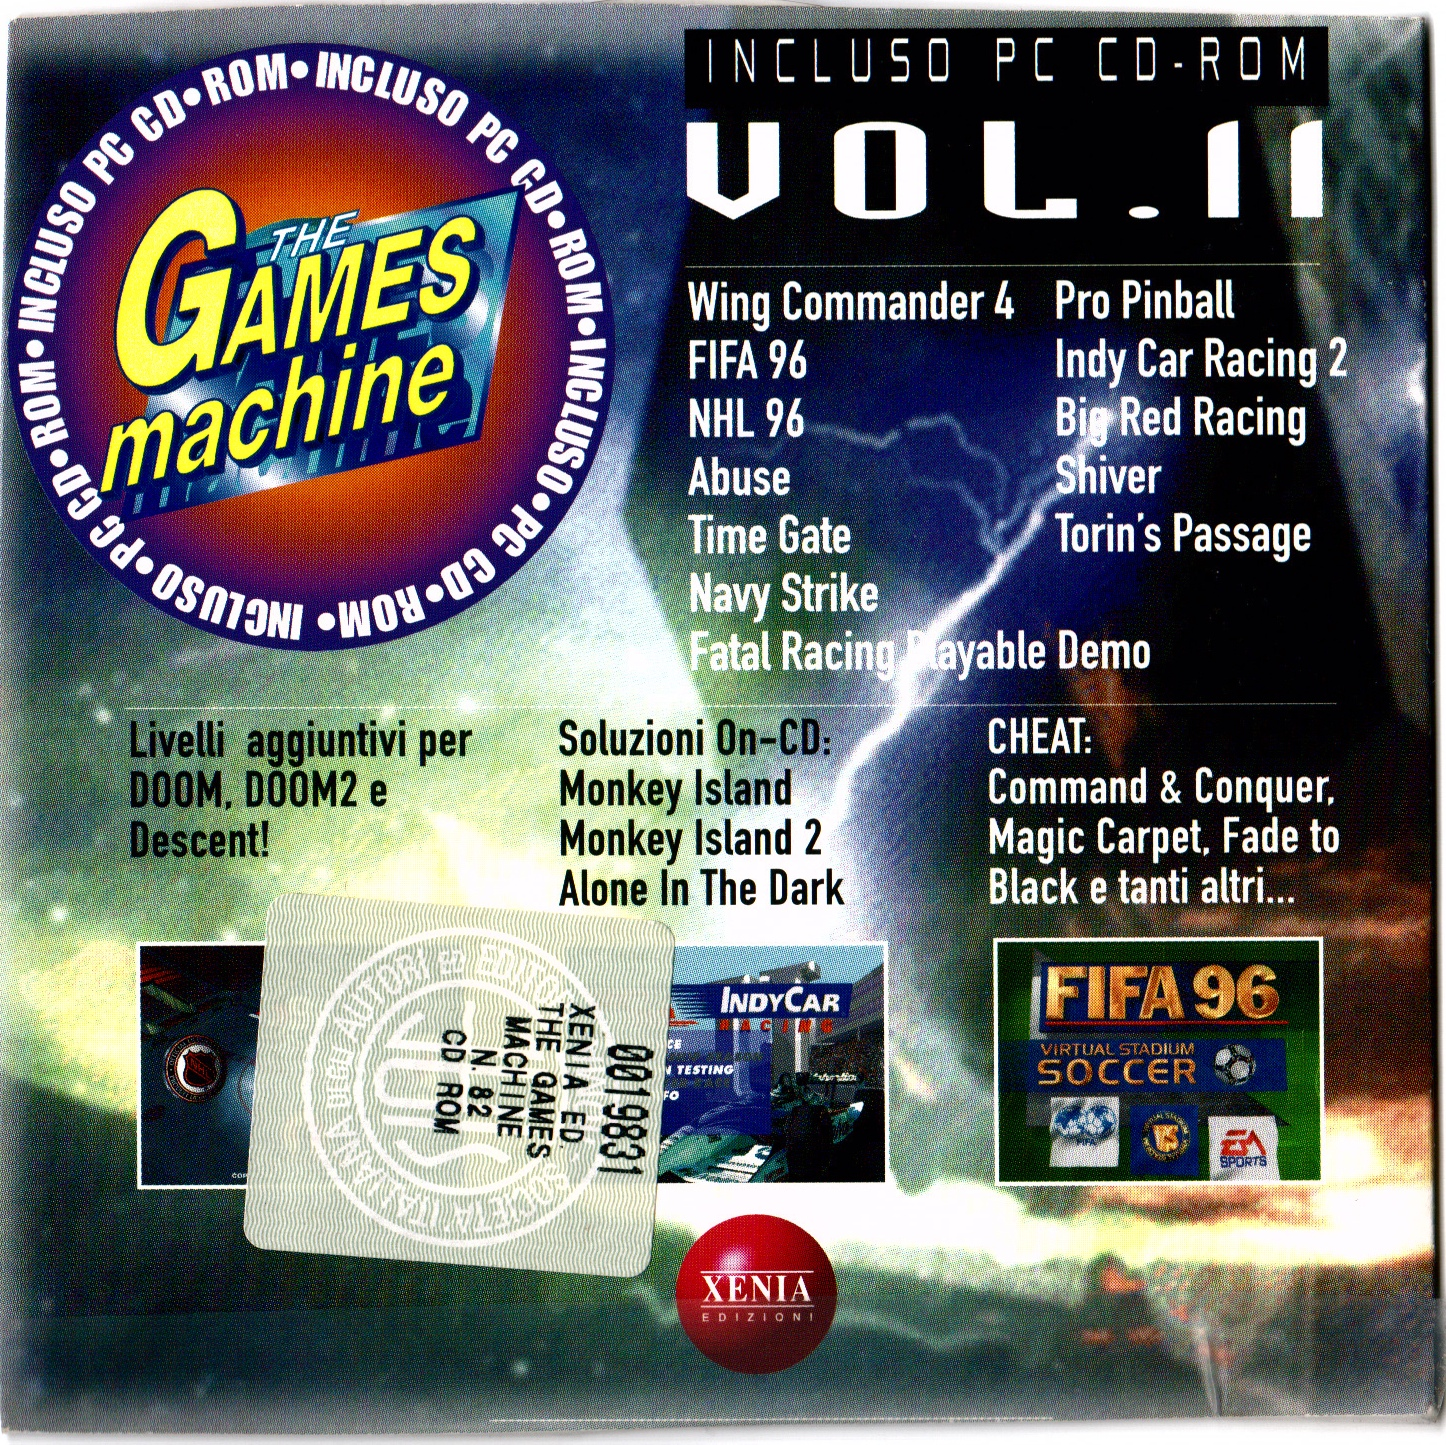 The Games Machine CD - Volume 011 : Xenia Edizioni : Free Download